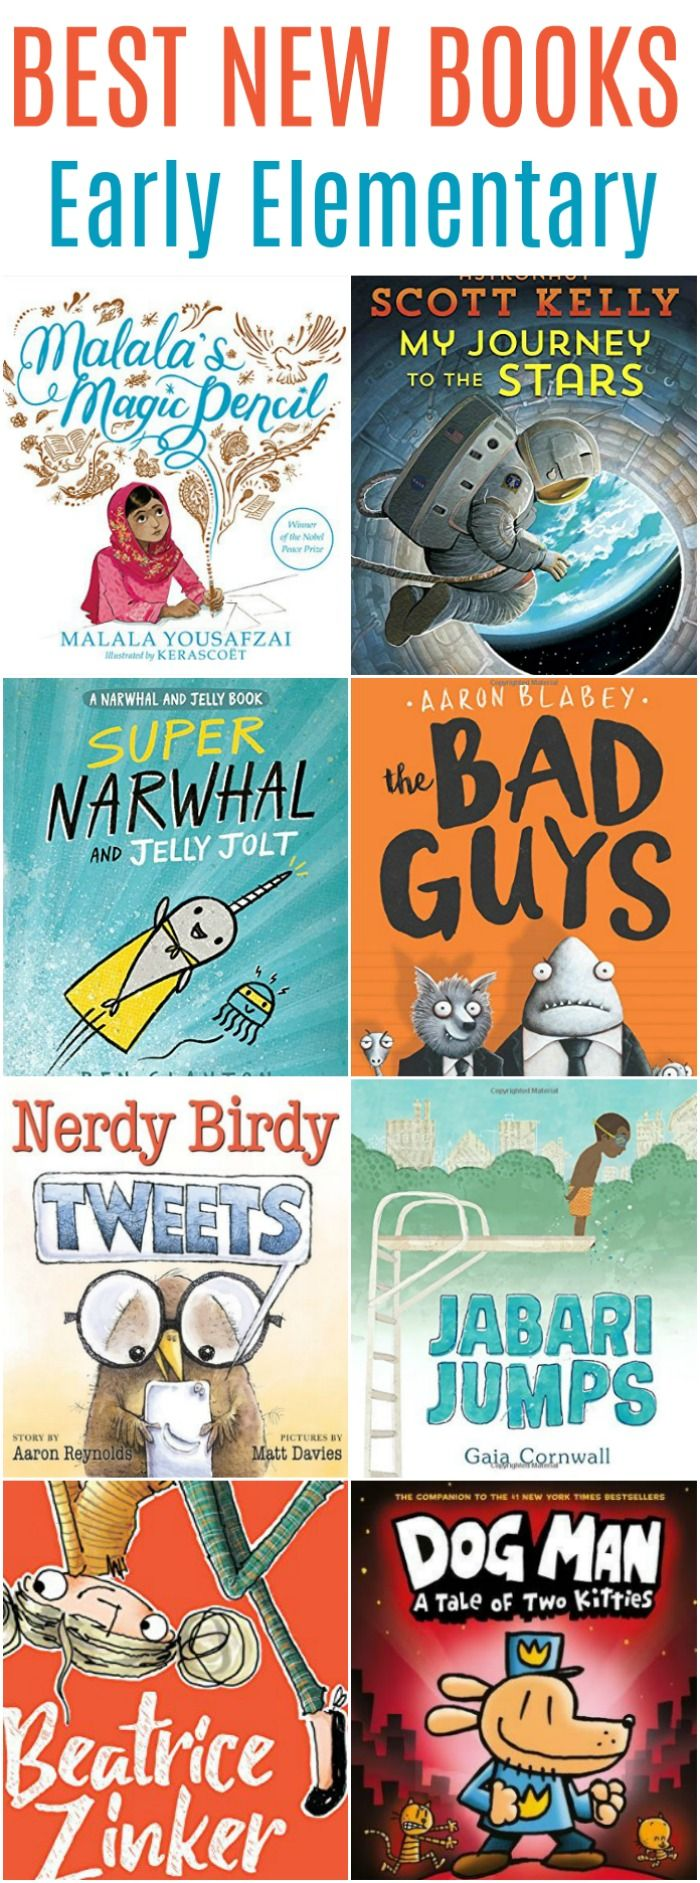 Best New Childrens Books of the Year! (Early Elementary) | Mommy Evolution #kidlit #childrensbooks #reading #chapterbooks #picturebooks